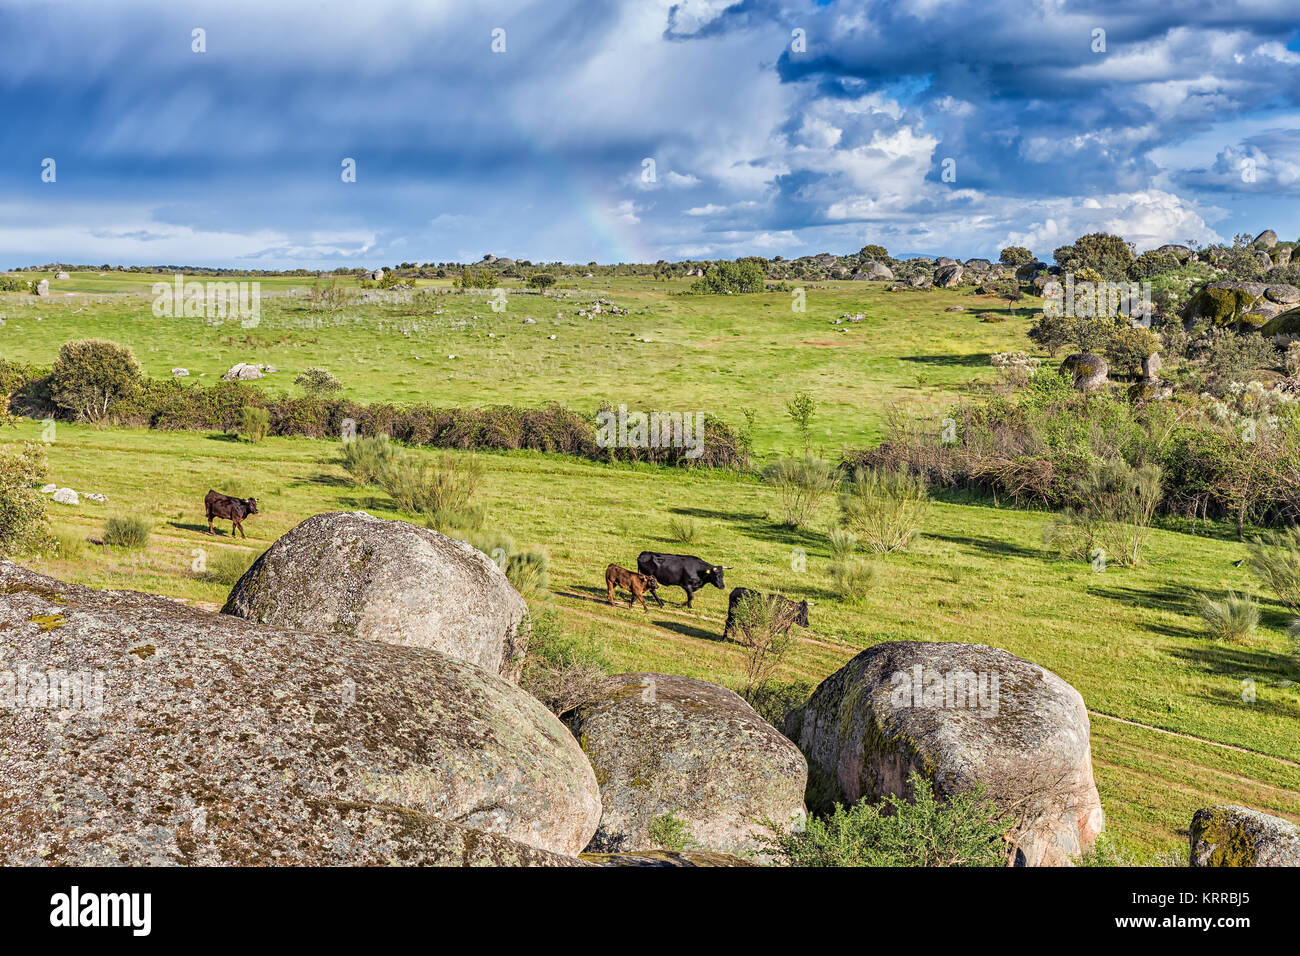 Cattle walking in the natural area of Barrueco. Malpartida de Caceres. Spain. - Stock Image